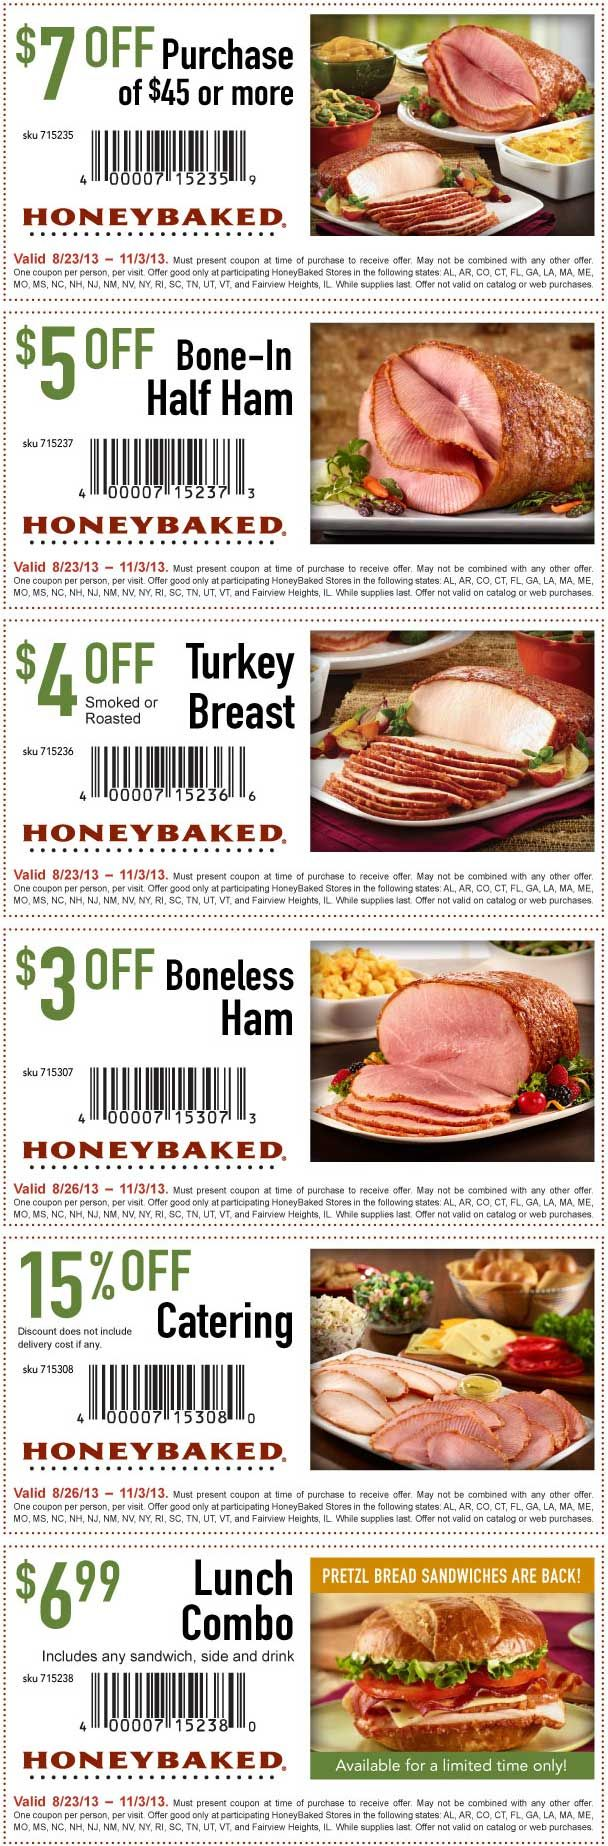 Pinned August 28th: $7 off $45 and more at Honey#Baked Ham #coupon via The Coupons App